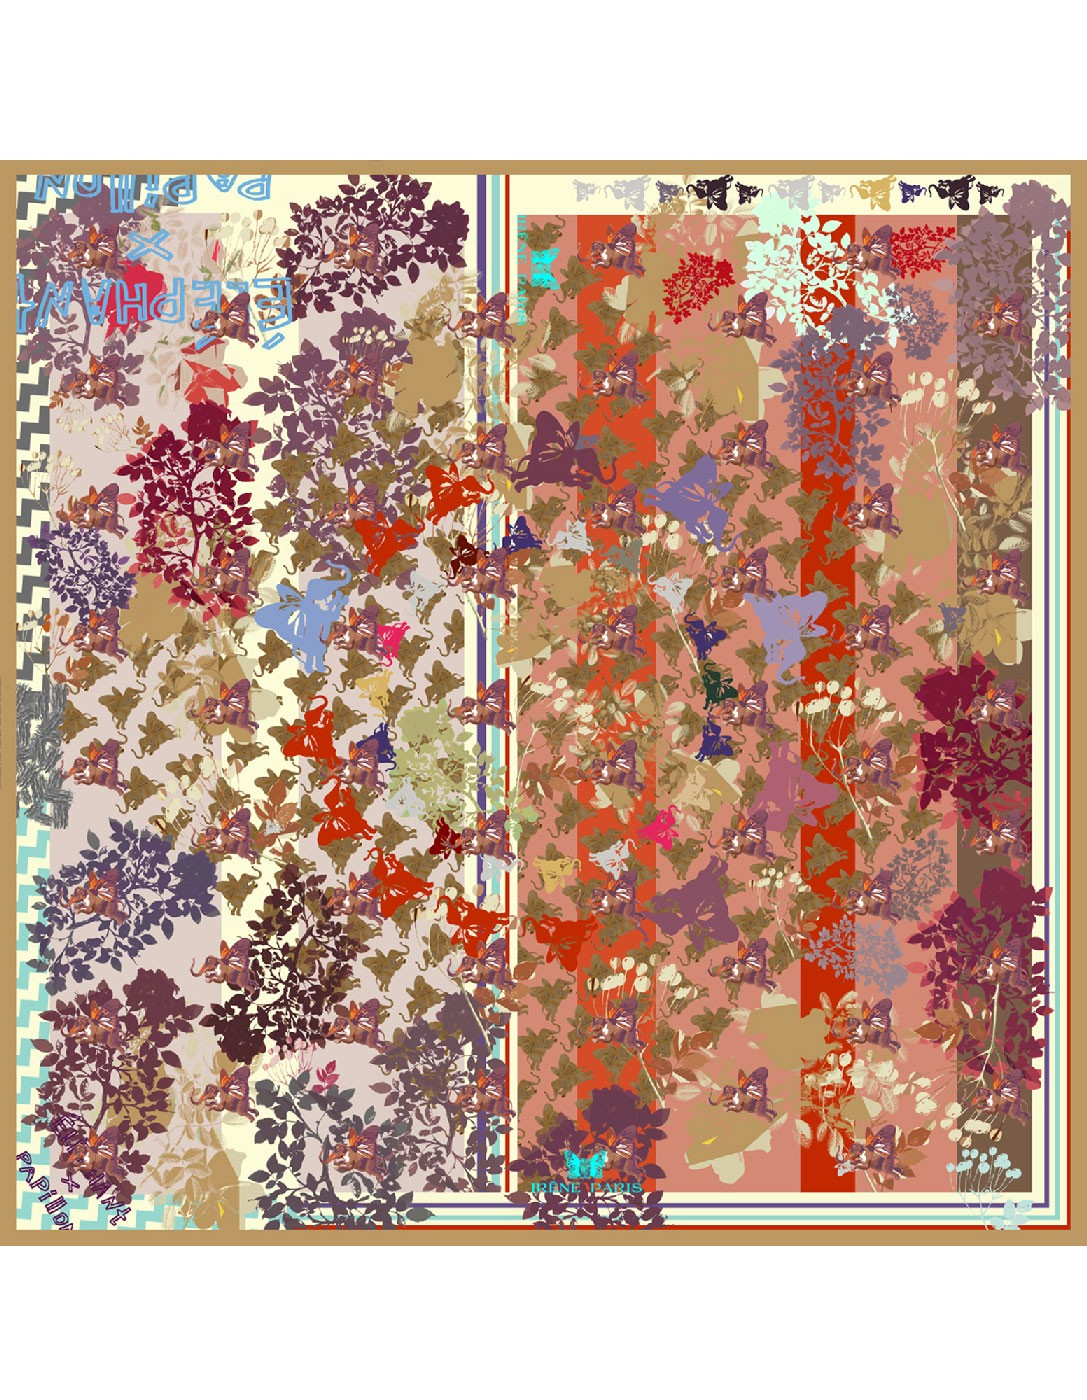 NEW Belle d'automne silk scarf 65x65